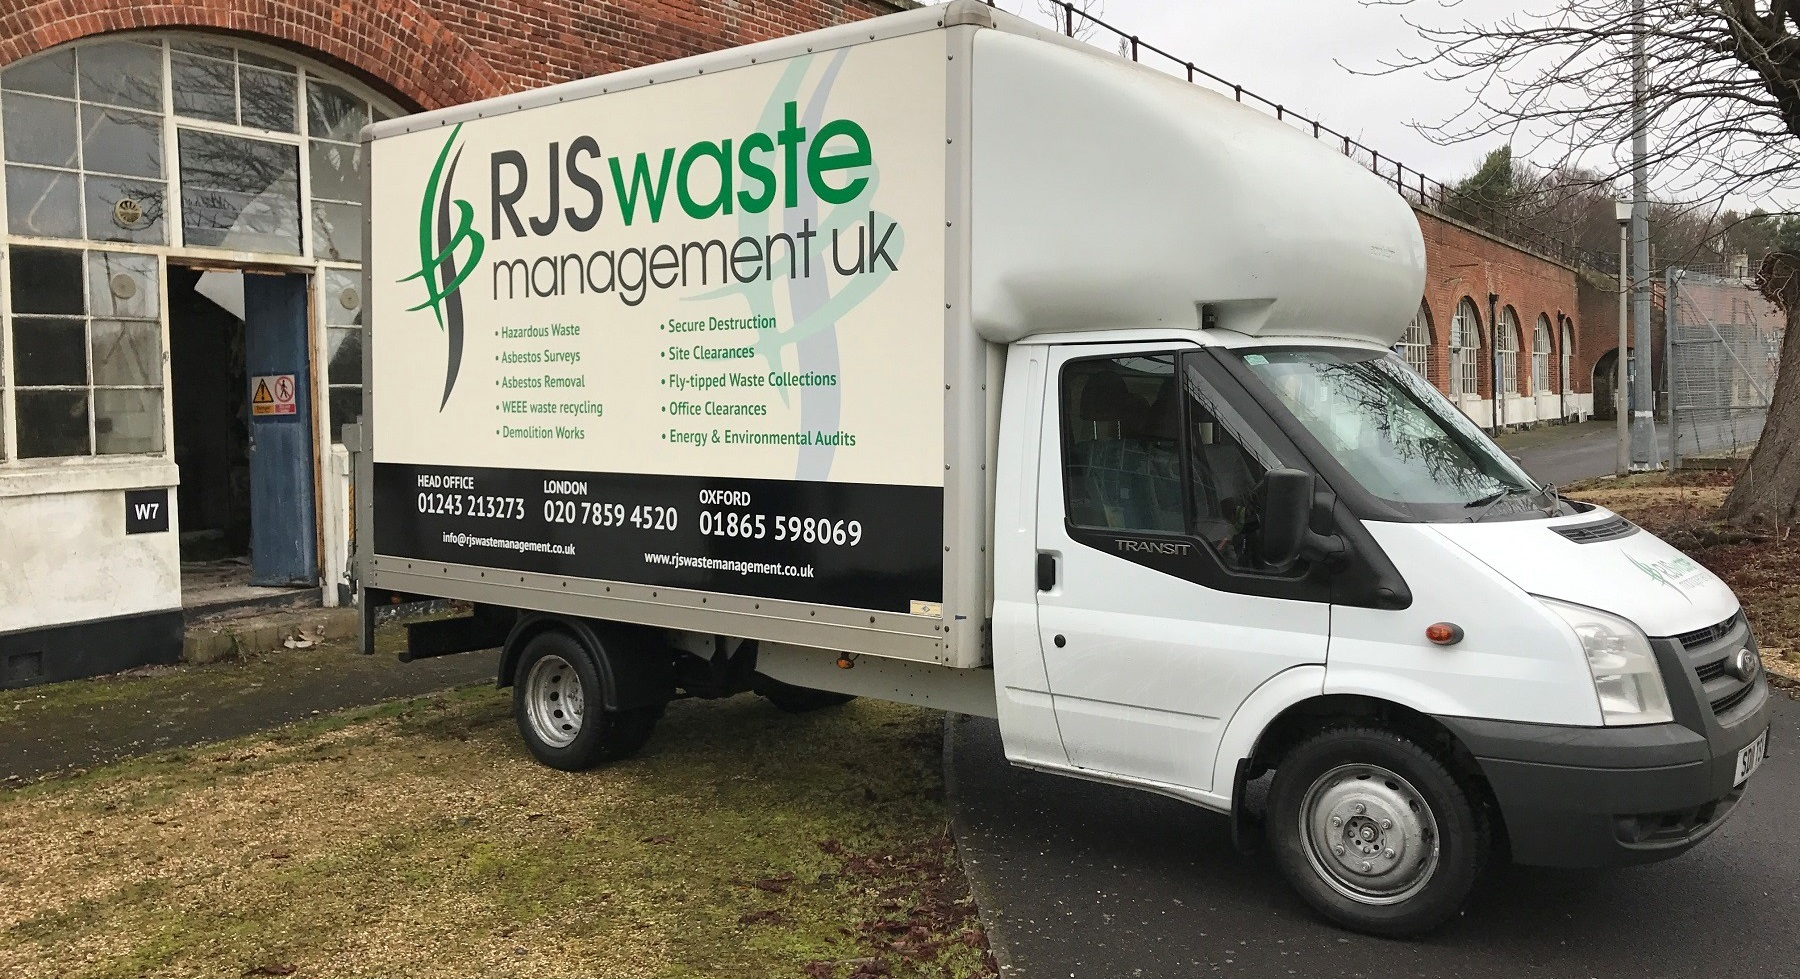 Safe removal of asbestos from RJS Wate Management UK Ltd, Chichester